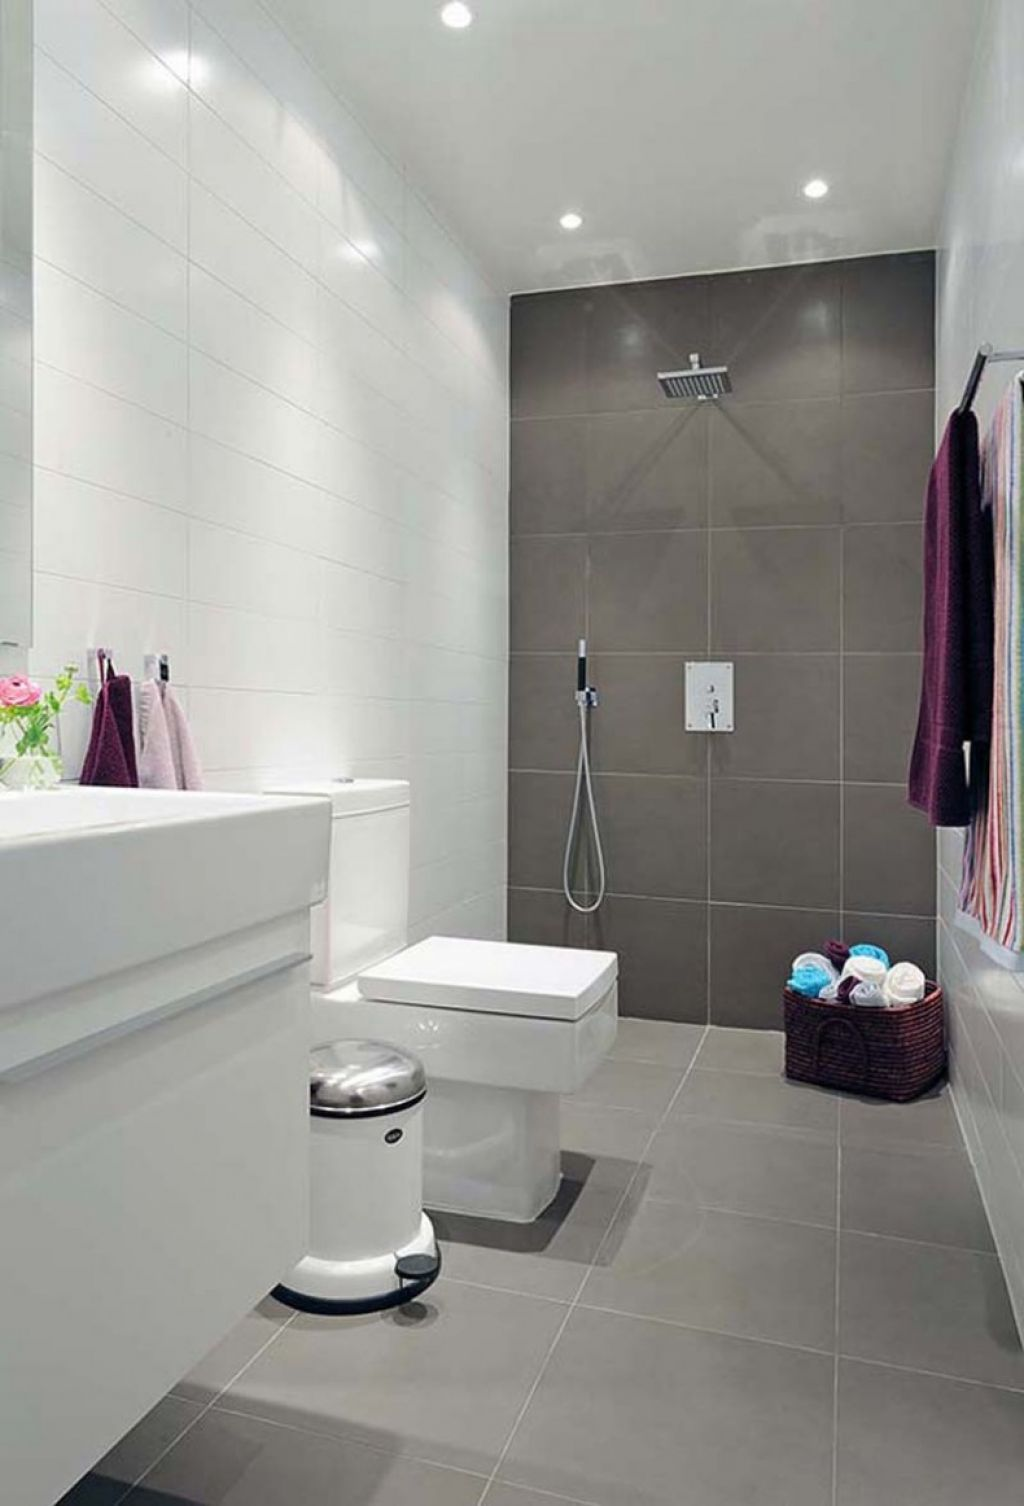 Modern Bathroom Tile Gray Bathroom Home Image Area Small Bathroom Tiles Small Bathroom Bathroom Design Small